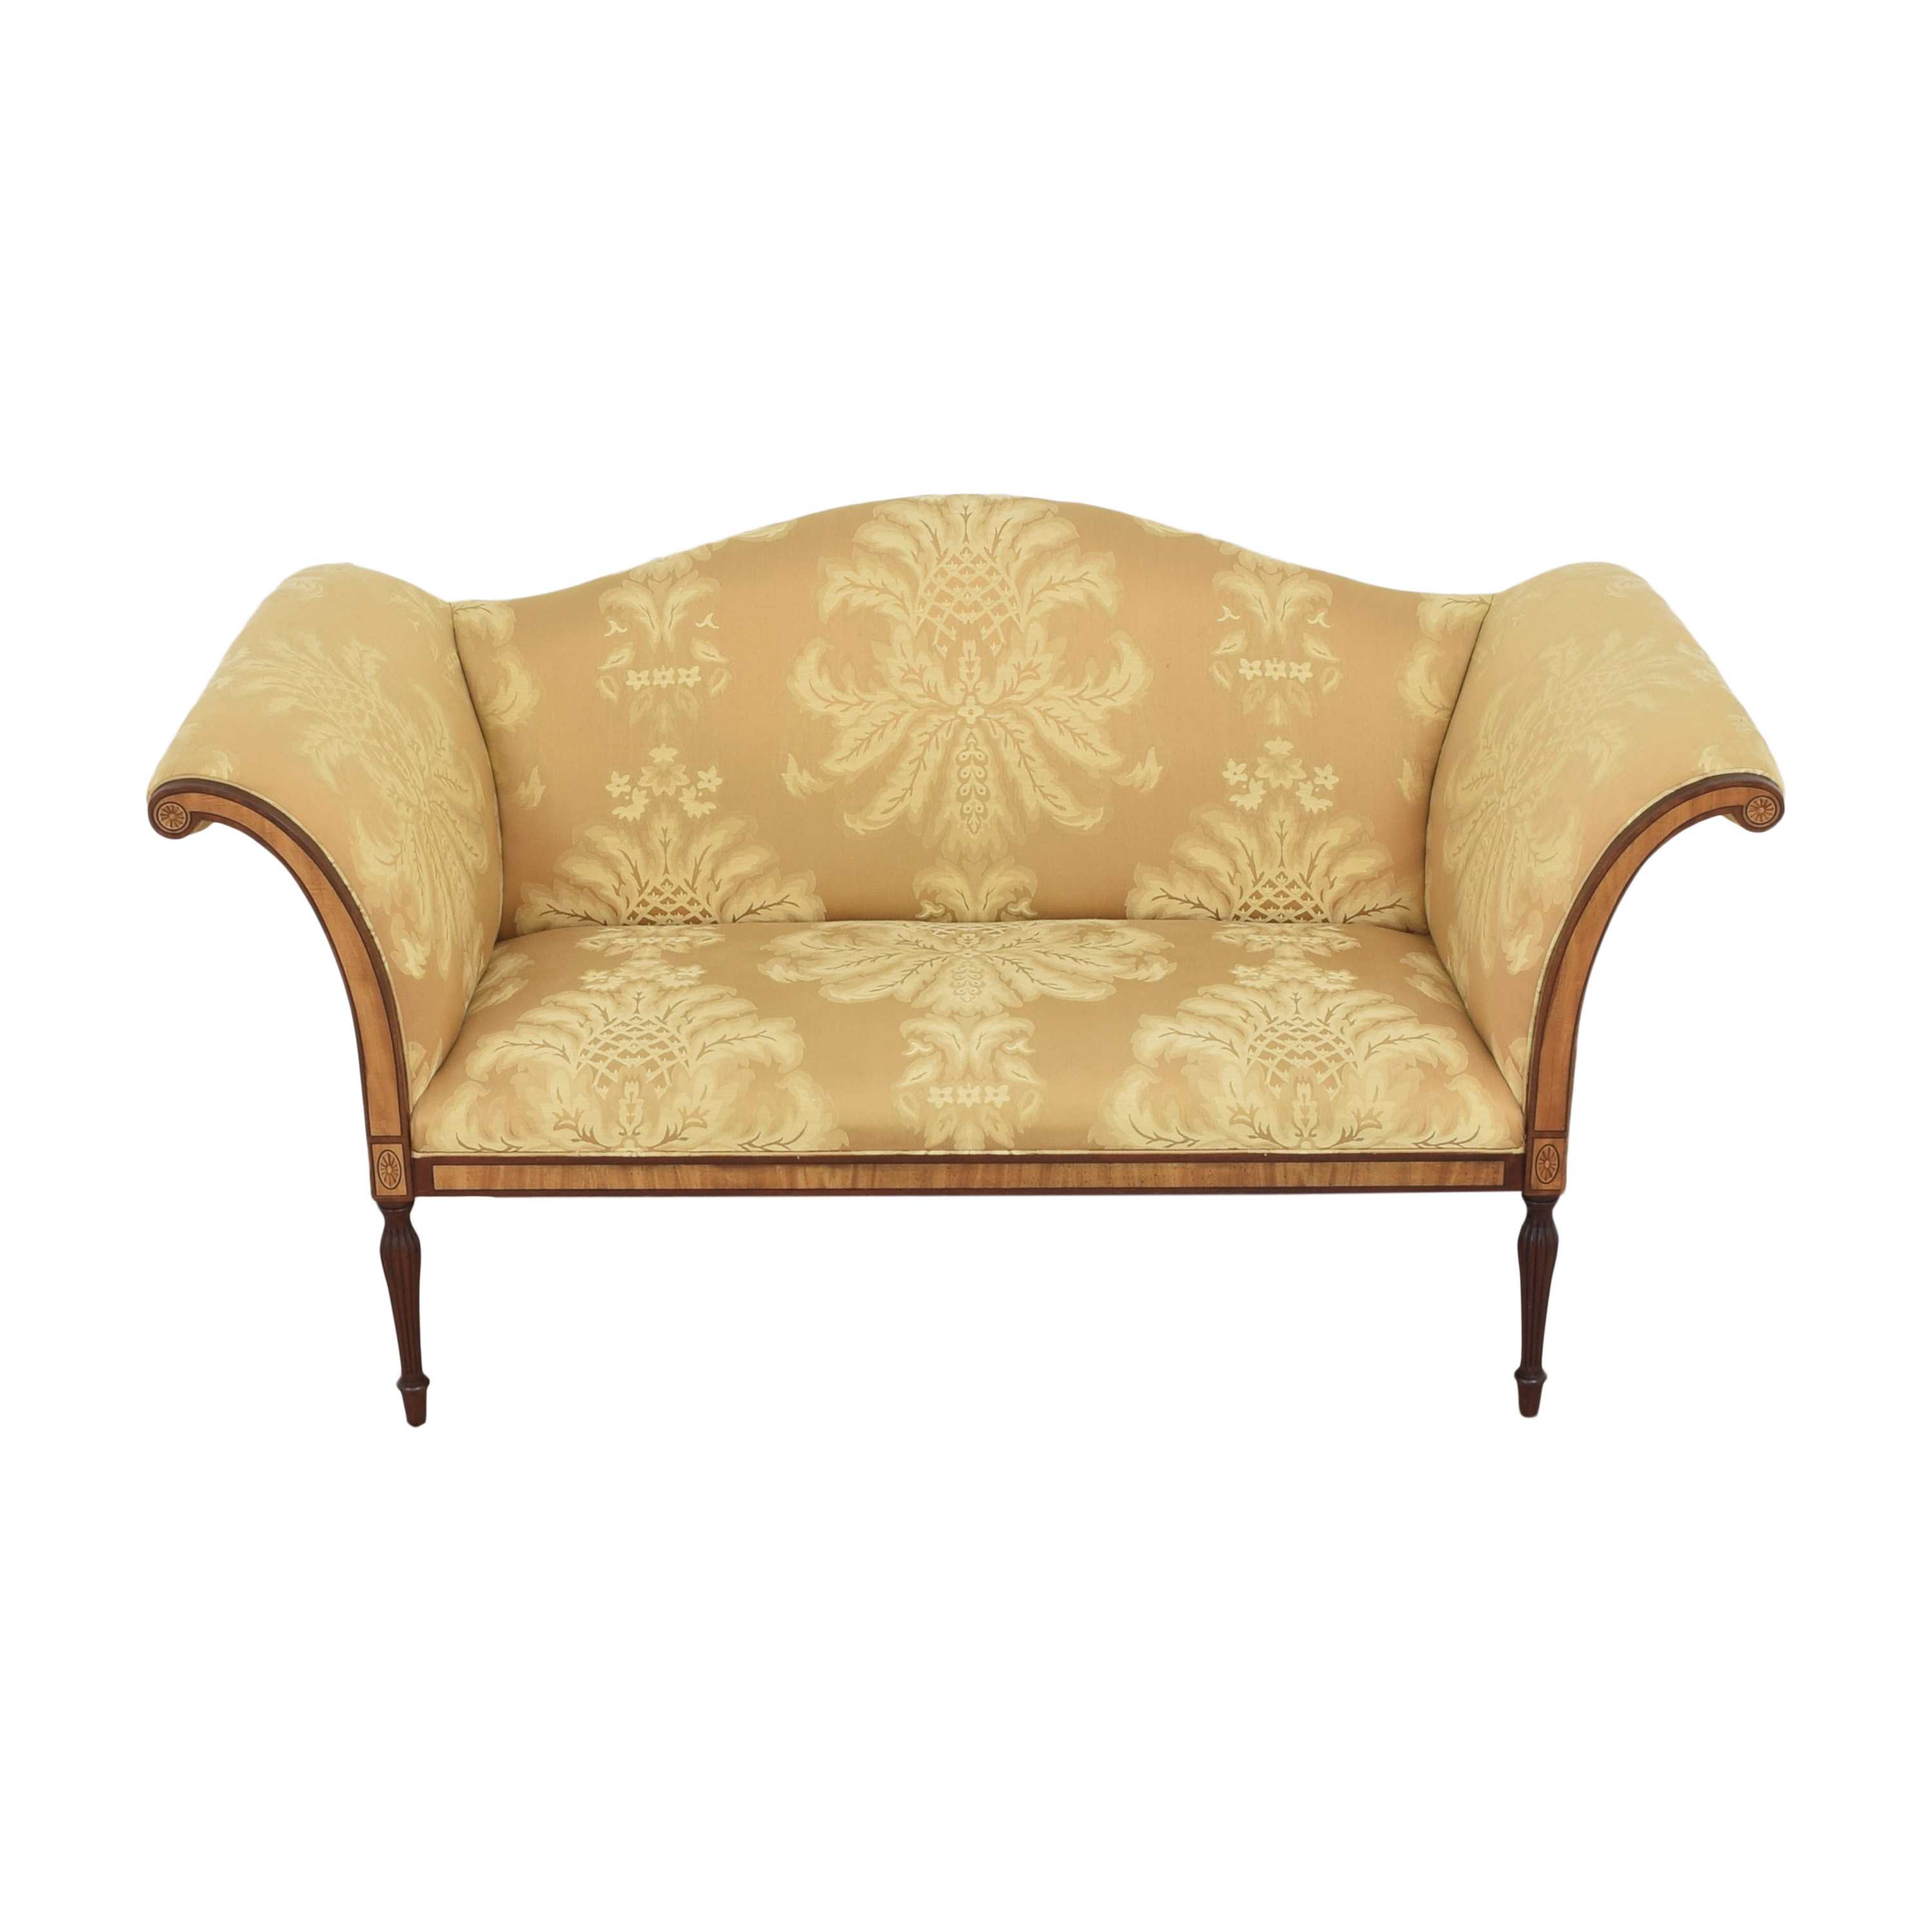 Southwood Southwood Loveseat with Pillows used